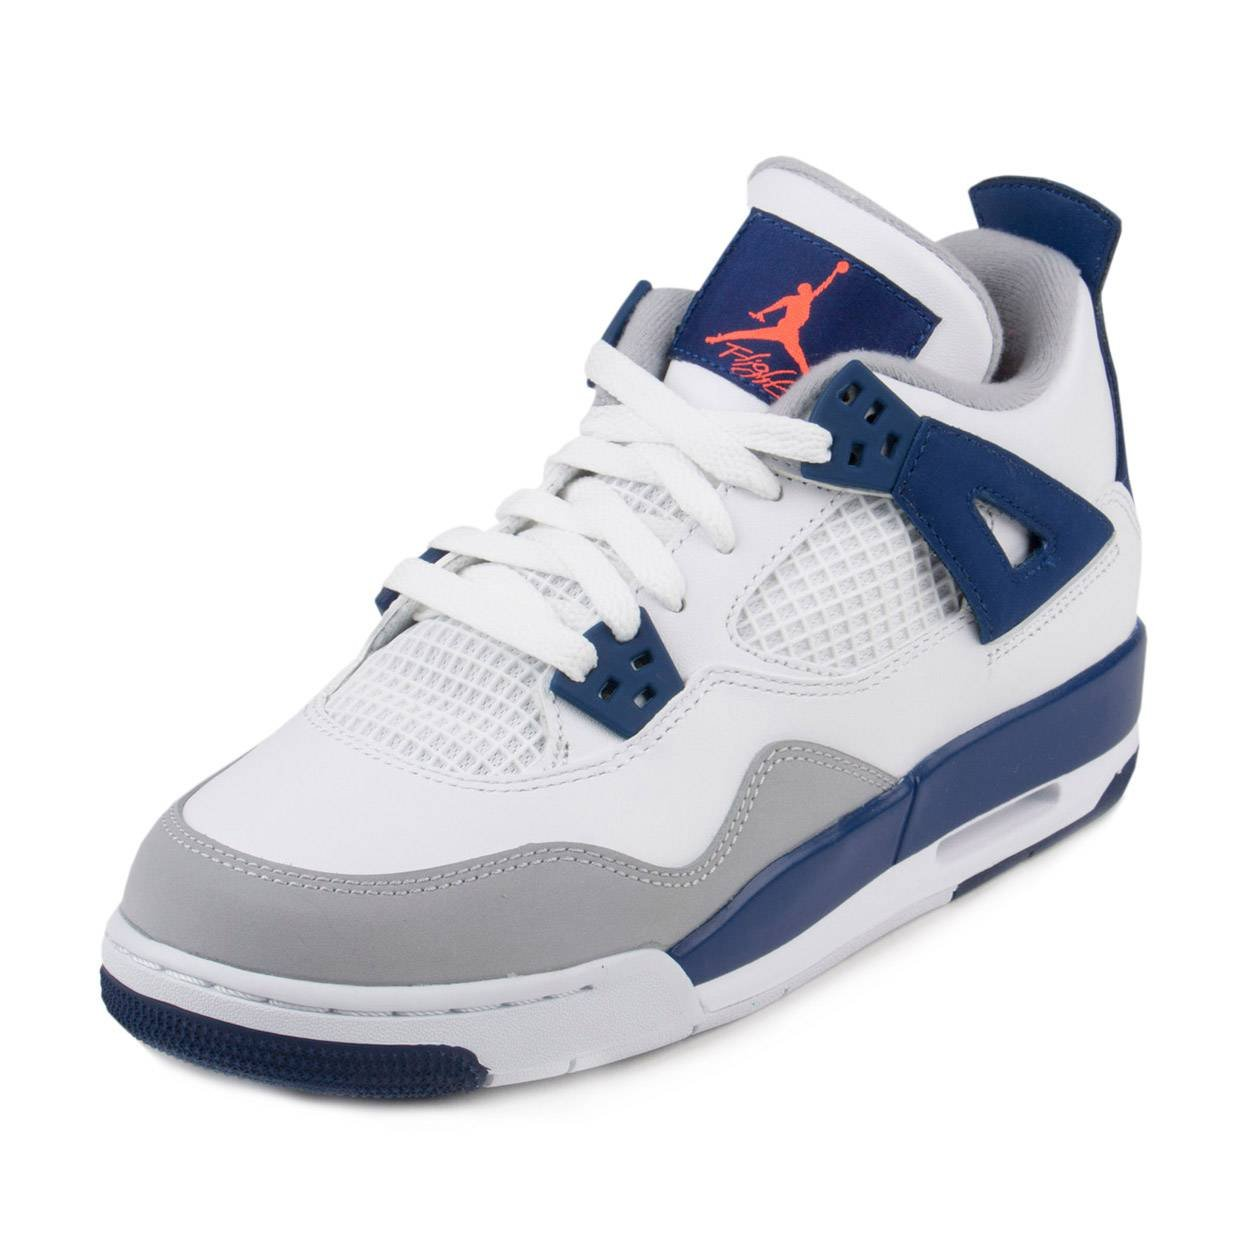 save off 42685 203f3 Galleon - Jordan 4 Retro Gg Big Kids Style, White Hyper Orange Deep Blue, 7